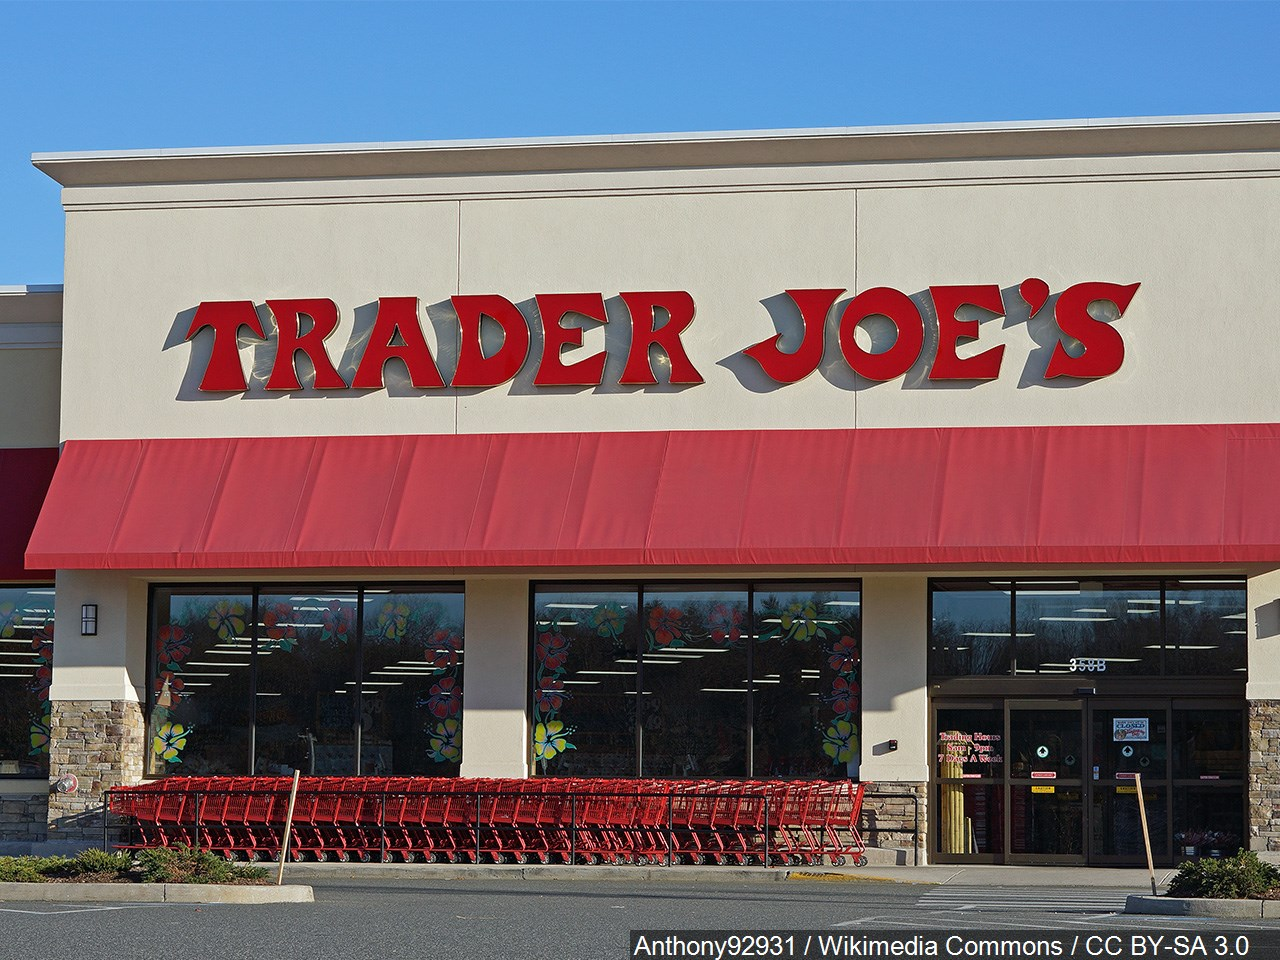 Trader Joe's looking at Little Rock locations on map of cargill locations, map of chick-fil-a locations, map of whole foods market locations, map of winco foods locations, map of bass pro shops locations, map of citibank locations, map of lifetime fitness locations, map of nasa locations, map of fairway market locations, map of food lion locations, map of qfc locations, map of 7-eleven locations, map of tires plus locations, map of rite aid locations, map of outback steakhouse locations, map of family dollar locations, map of gamestop locations, map of la fitness locations, map of bank of america locations, map of sears locations,